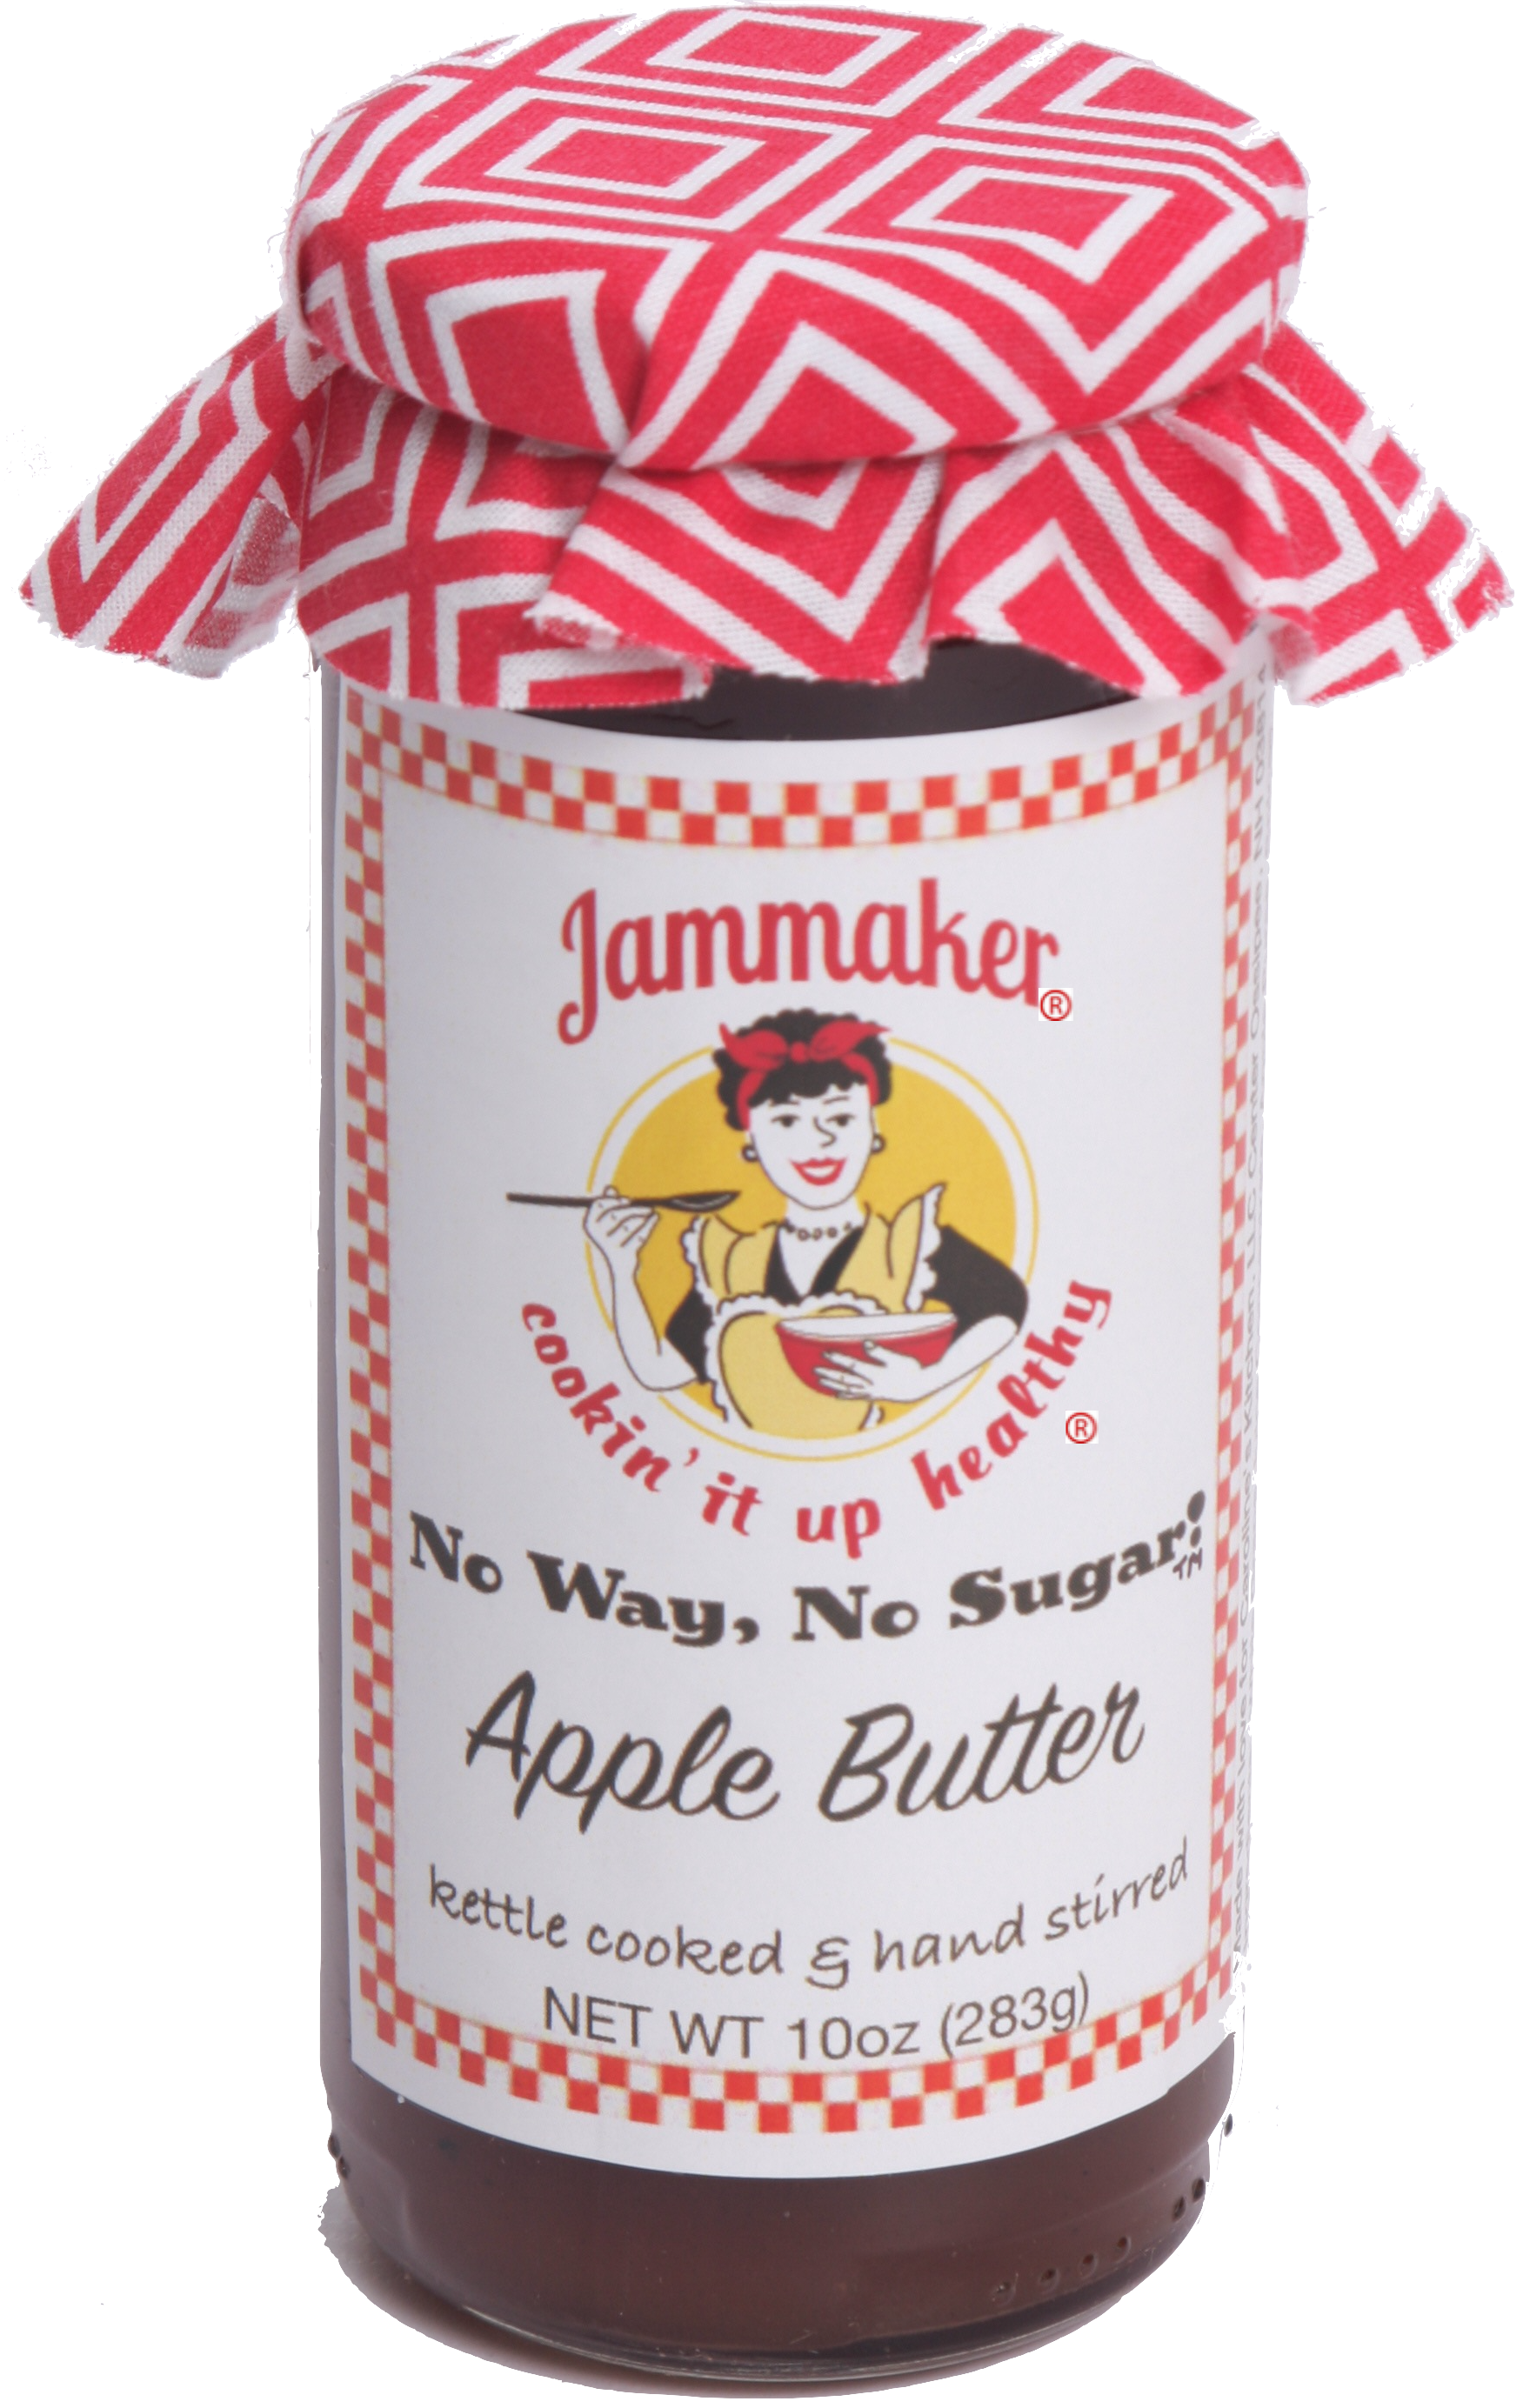 No Way, No Sugar! Apple Butter